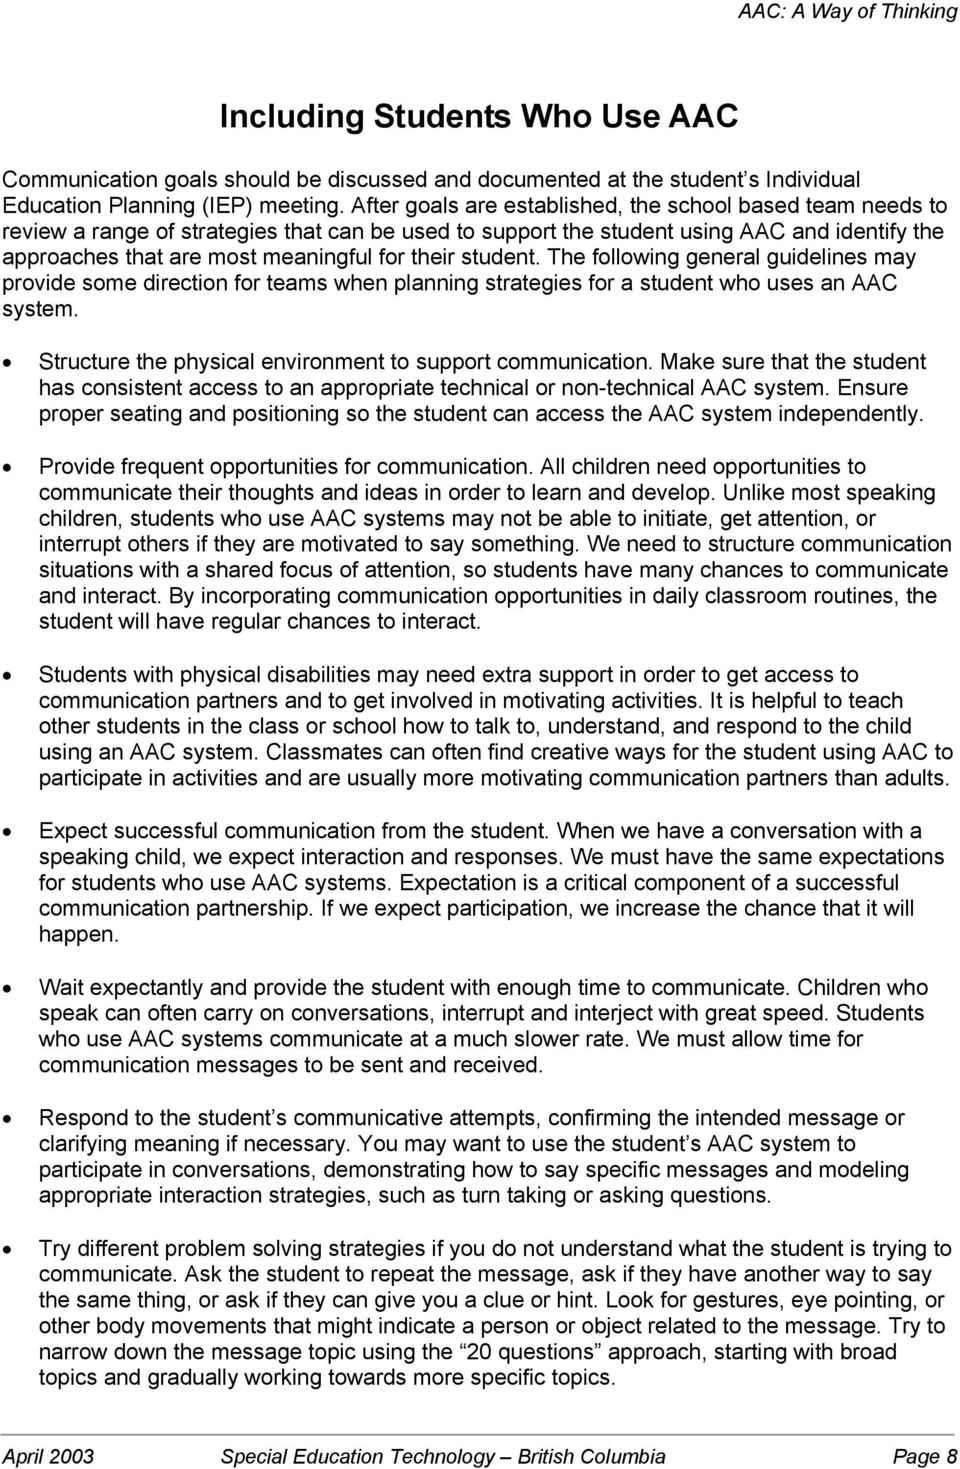 their student. The following general guidelines may provide some direction for teams when planning strategies for a student who uses an AAC system.